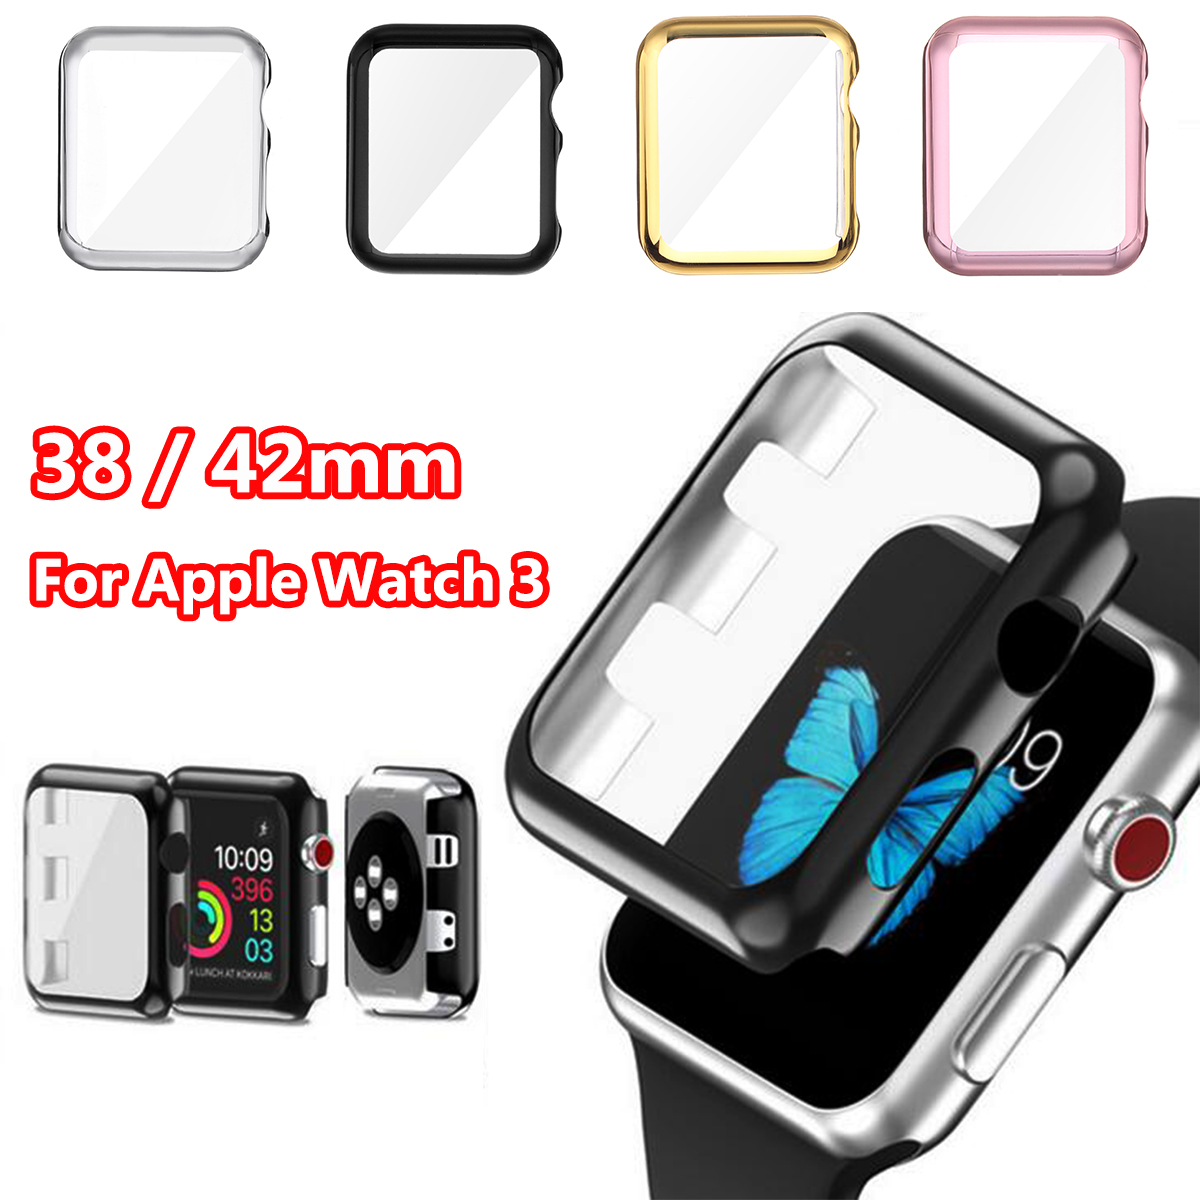 38mm/42mm Full Cover Case Screen Protector Transparent Protected Knocks Watch Cases for Apple watch for iwatch Series 3